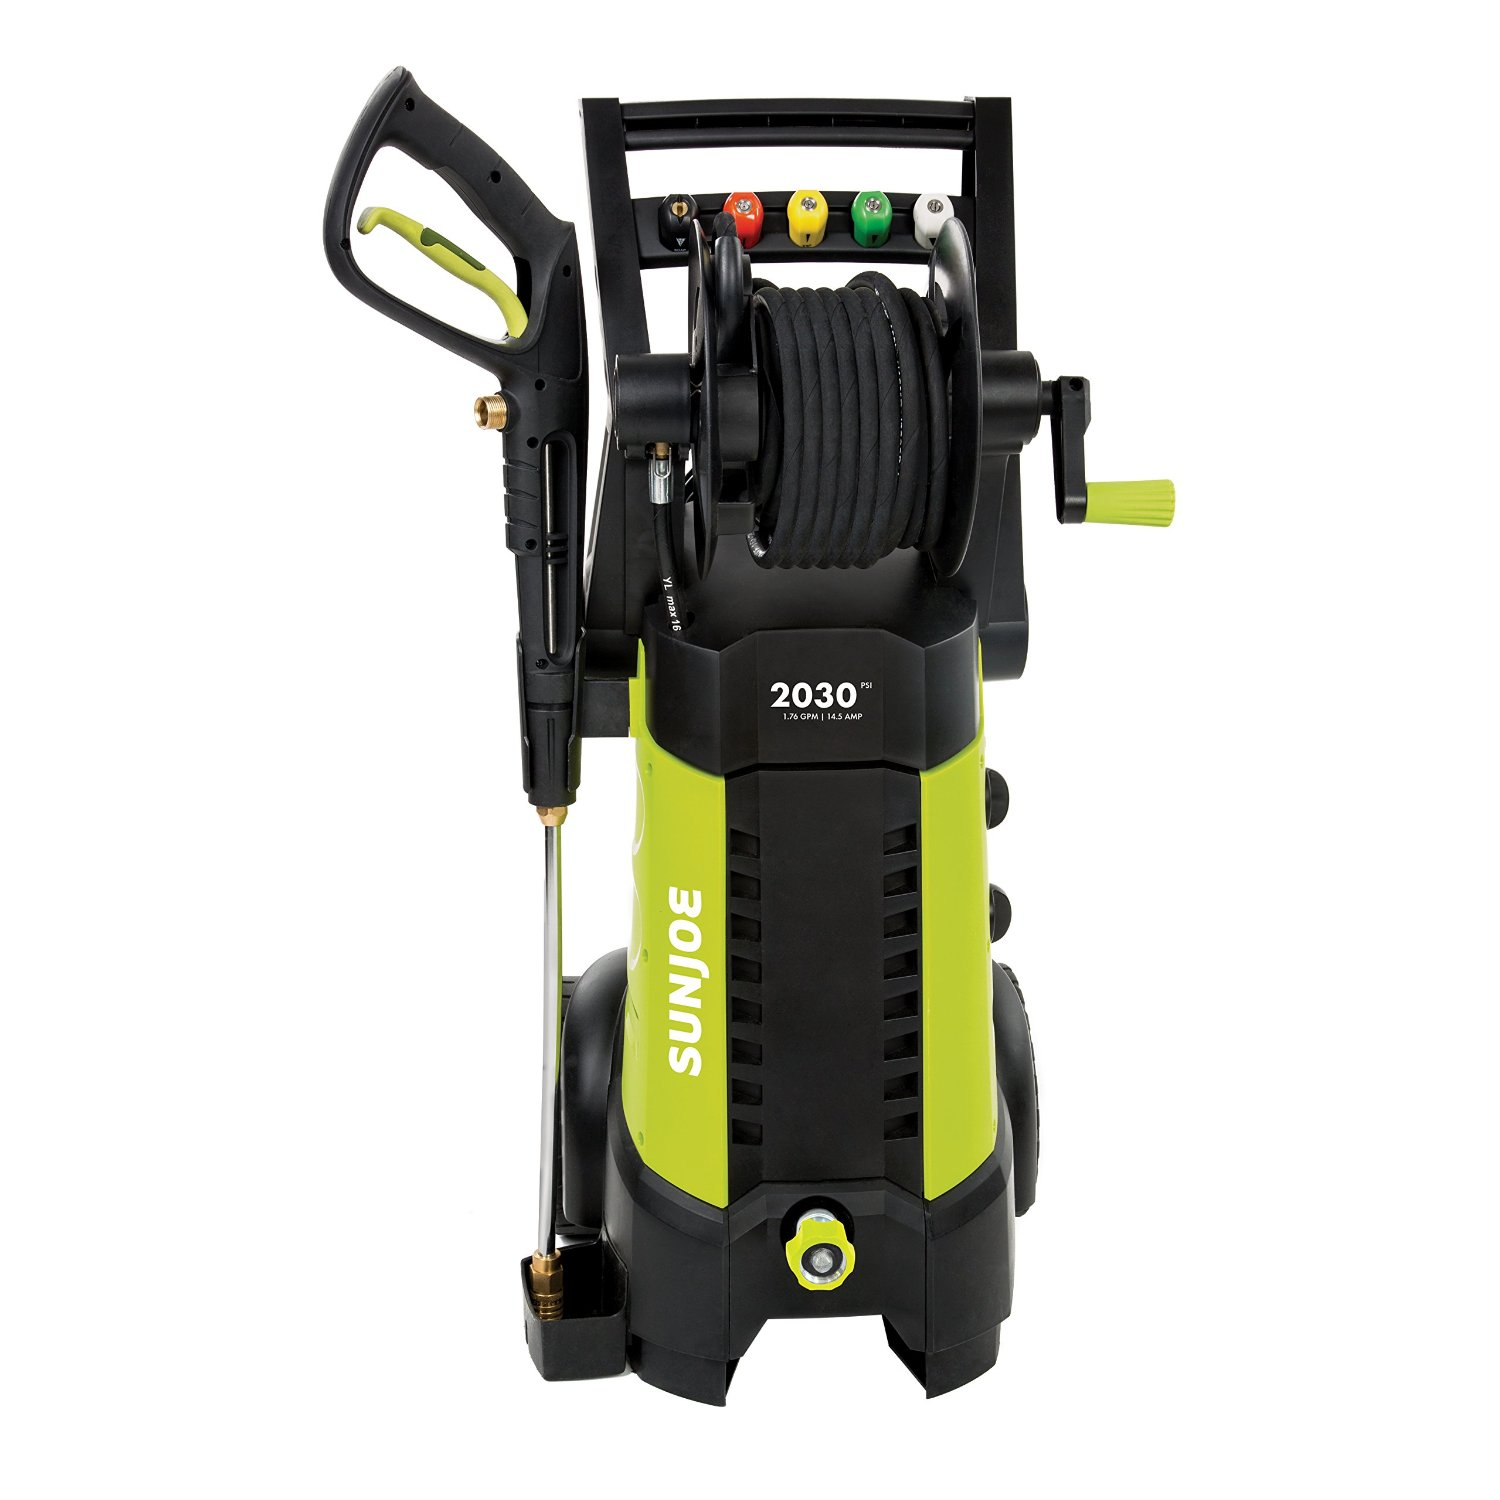 Snow Joe Sun Joe SPX3001 2030 PSI 1.76 GPM 14.5 AMP Electric Pressure Washer with Hose Reel, Green